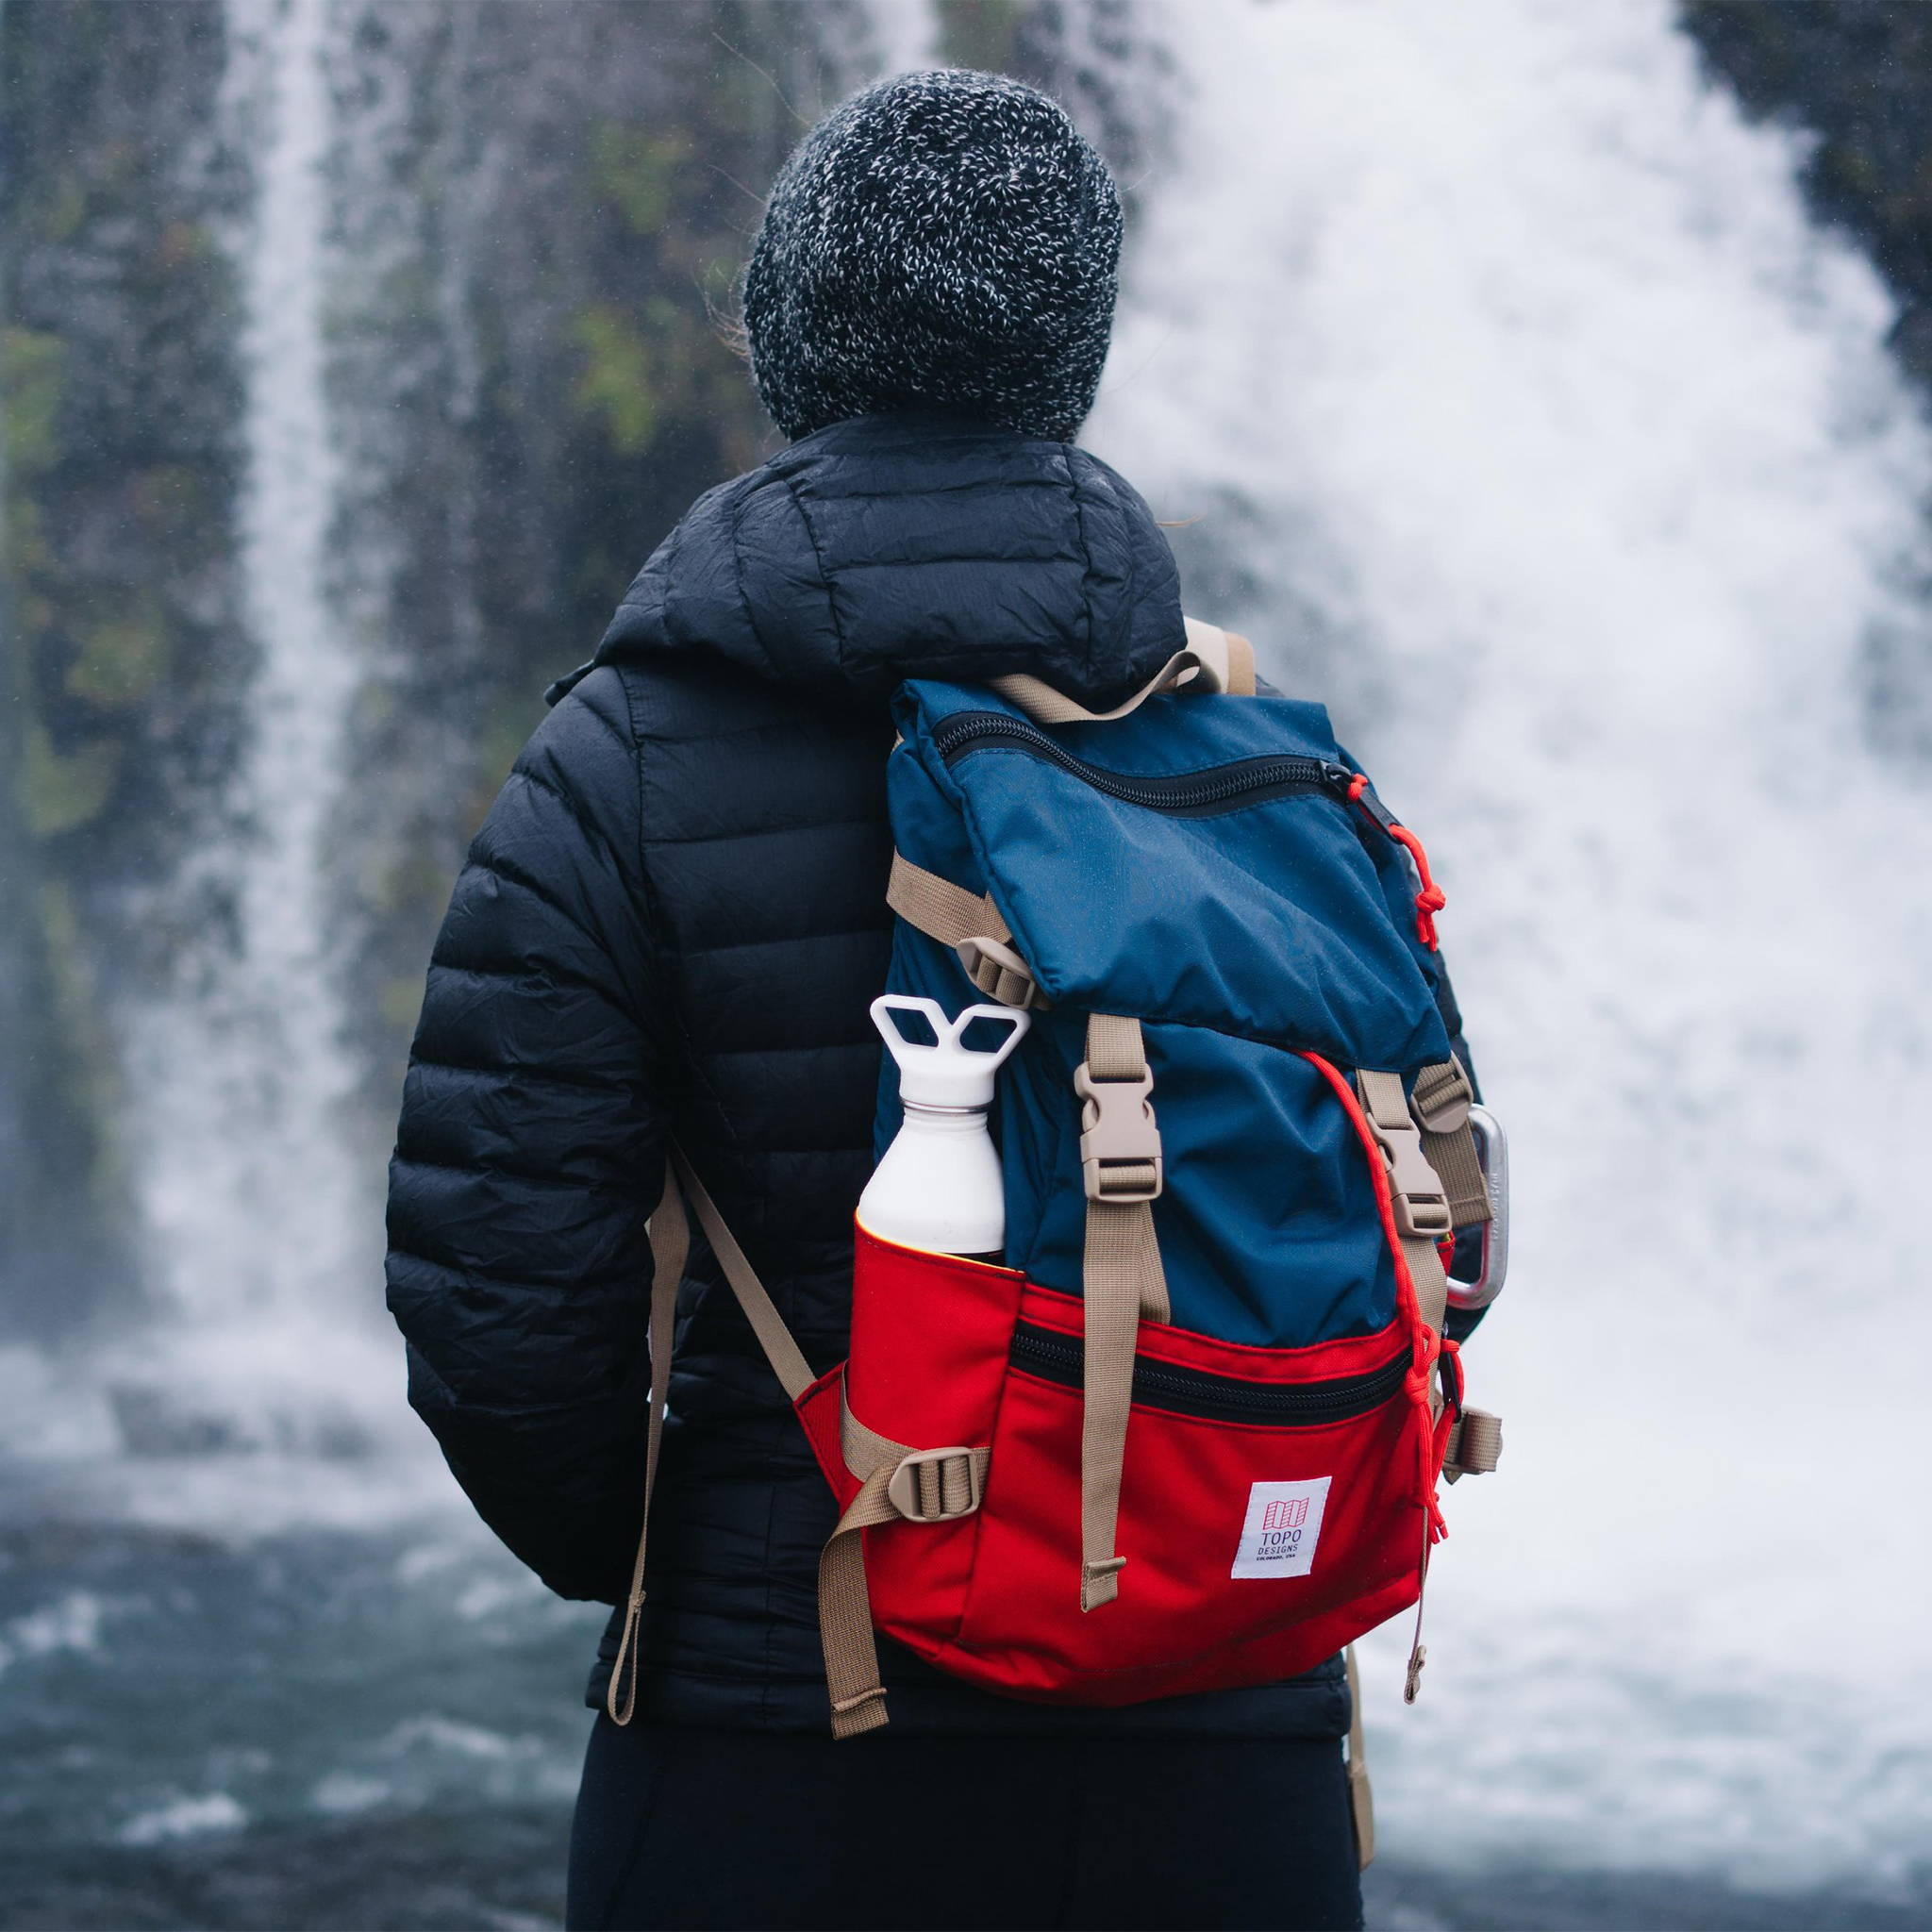 cf9922a39 Rover Pack Rucksack Backpack | Topo Designs - Made in Colorado, USA